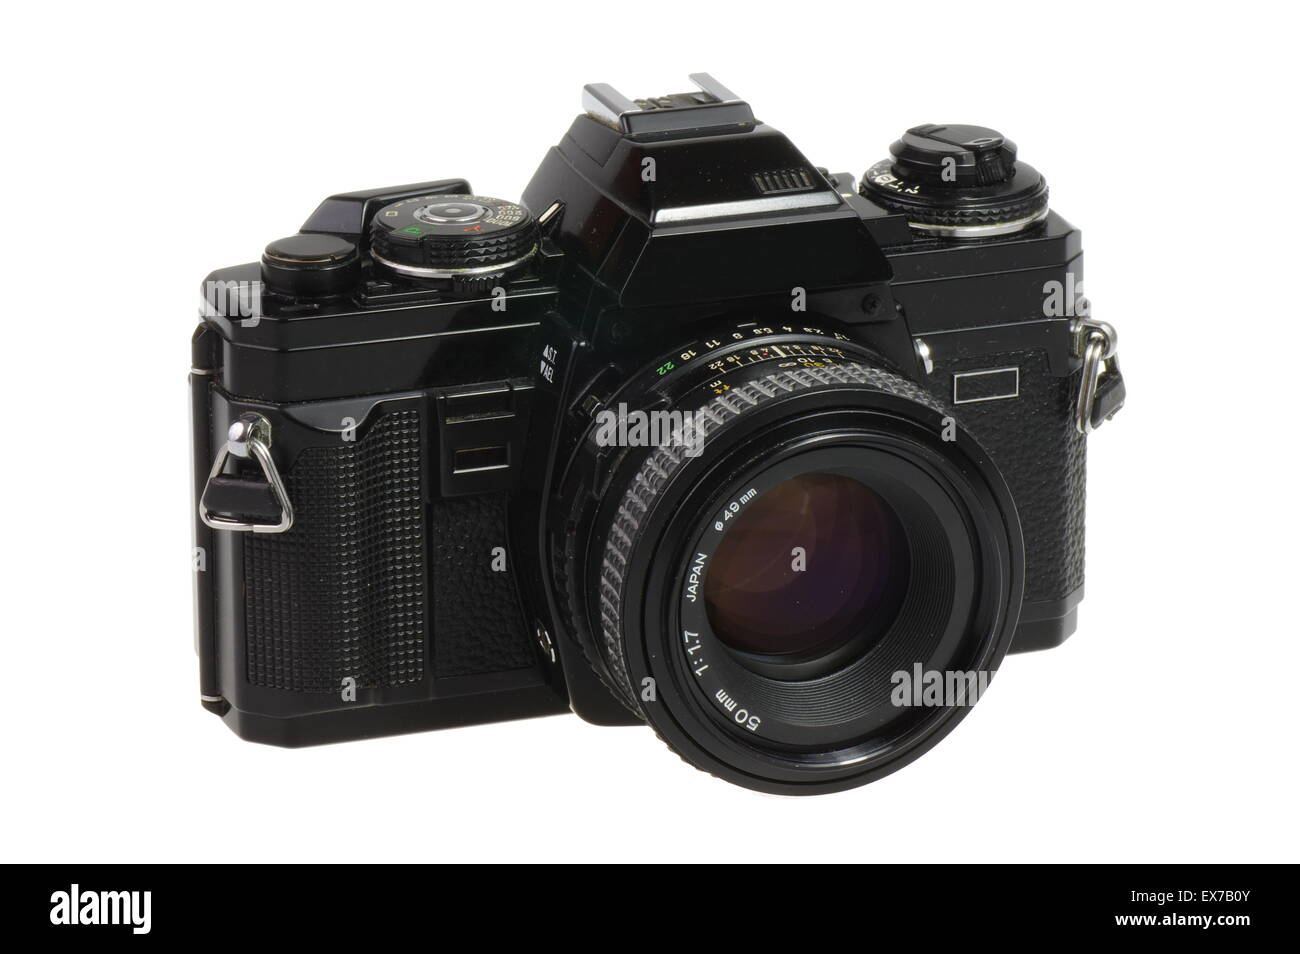 Old camera. Classic 135 format SLR camera on a white background - isolated - Stock Image